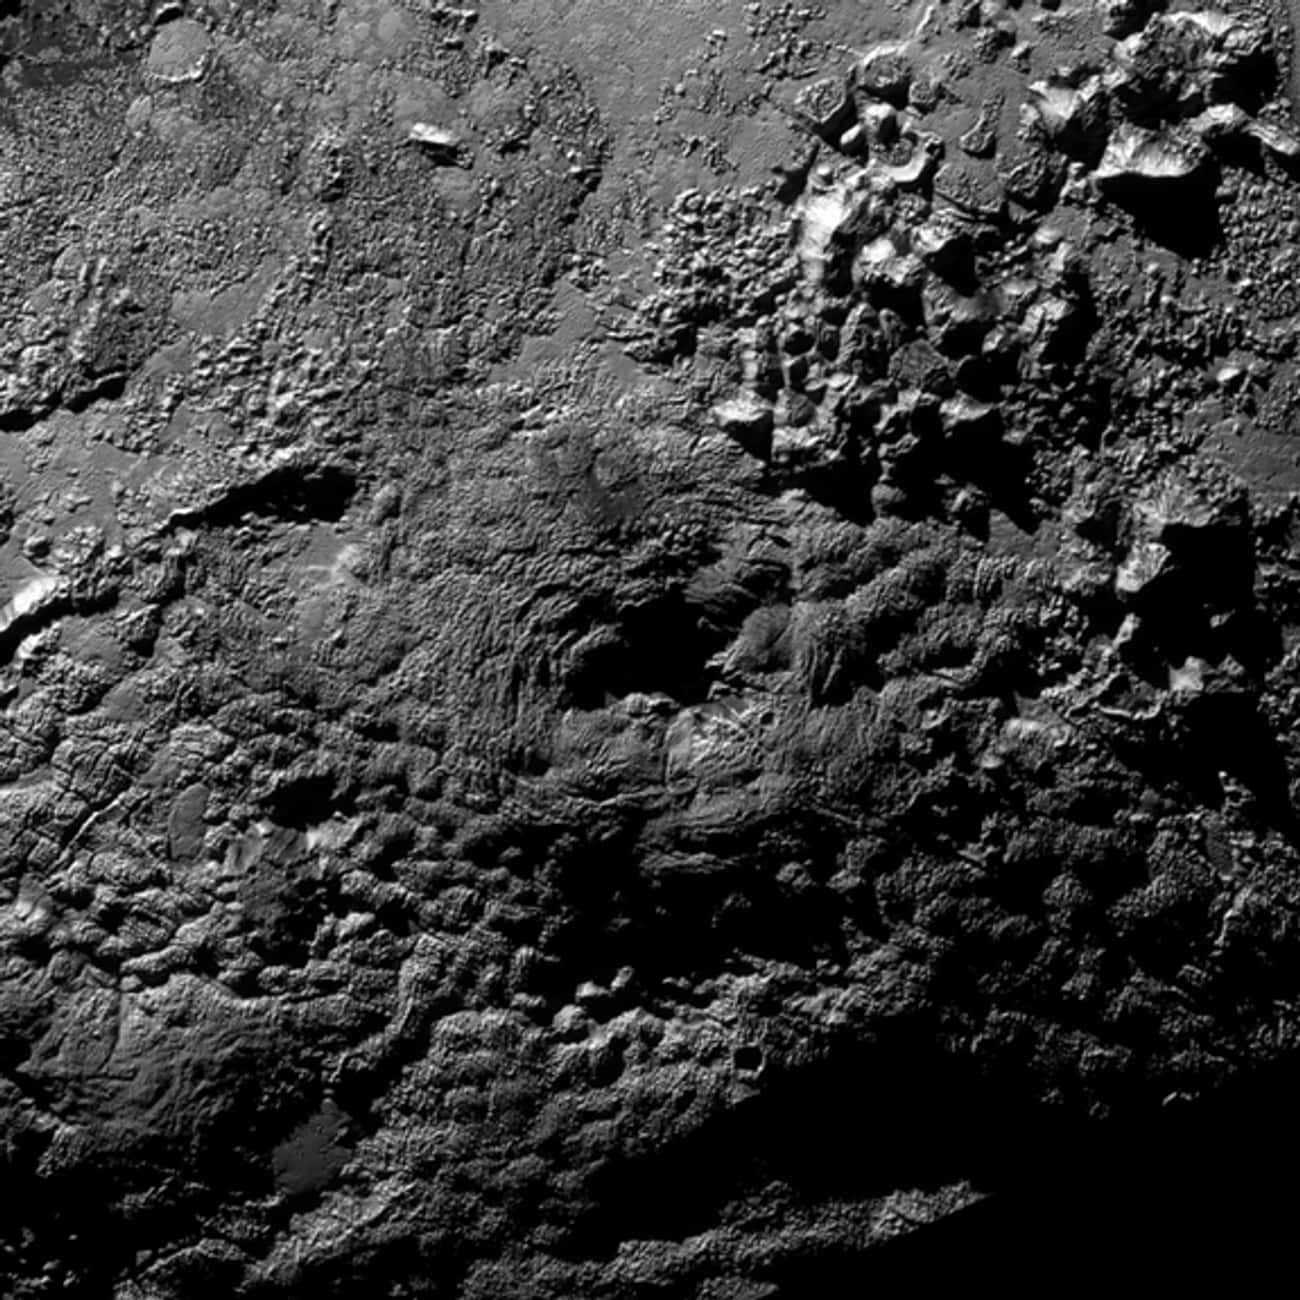 Pluto May Have Erupting Ice Vo is listed (or ranked) 4 on the list Cool Discoveries from the New Horizons Space Probe